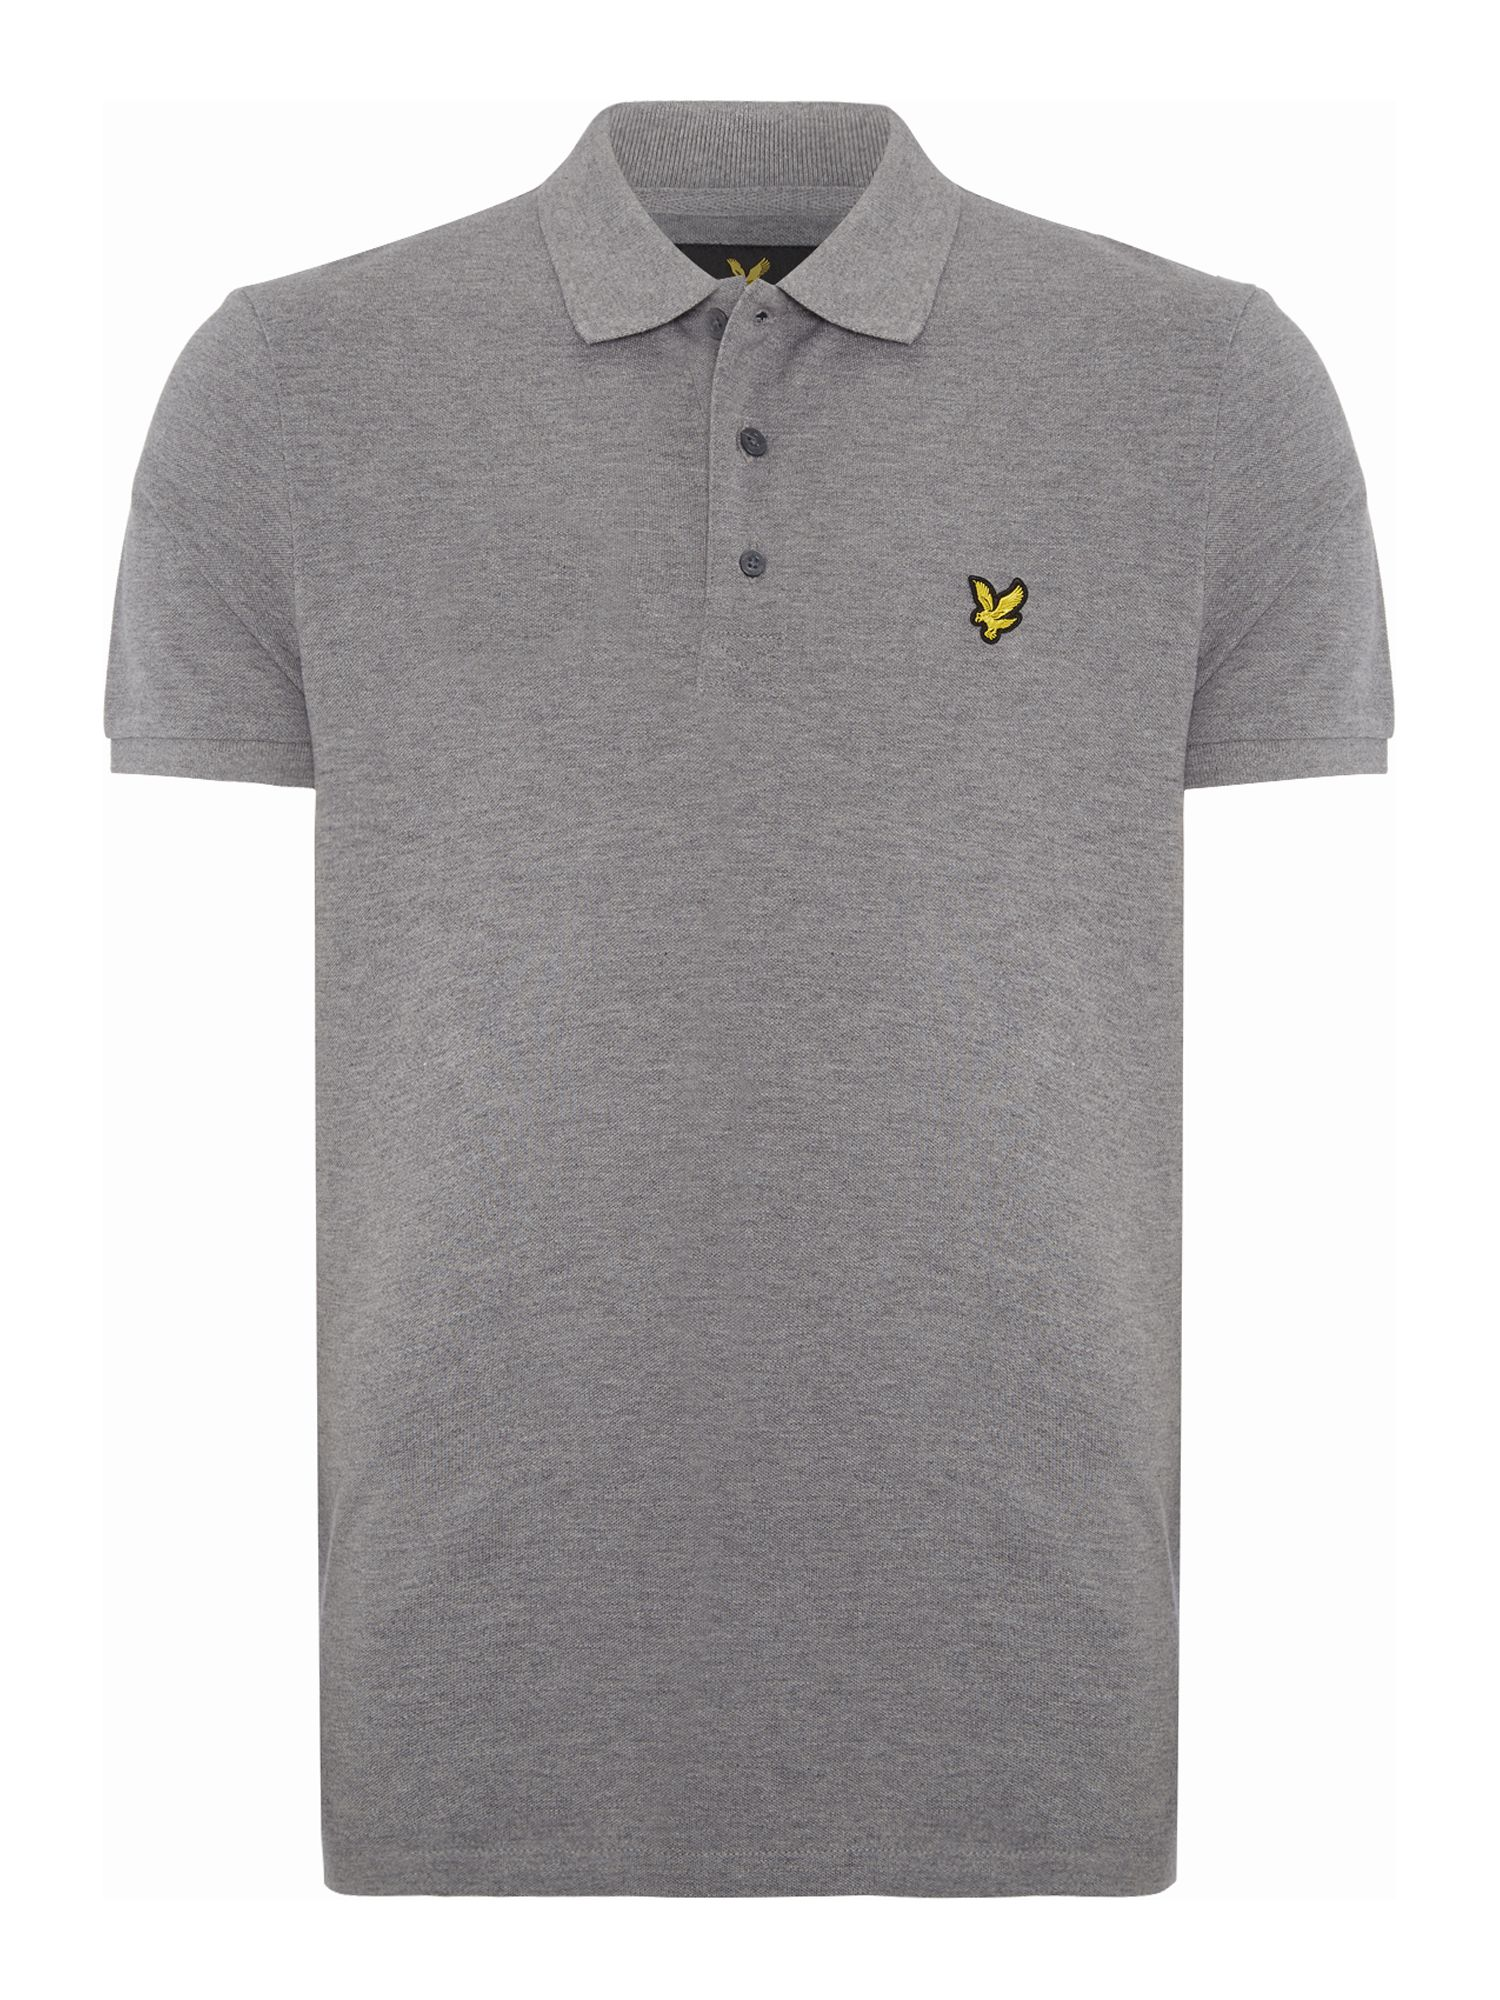 Men's Lyle and Scott Short Sleeve Plain Pique Polo, Mid Grey Marl